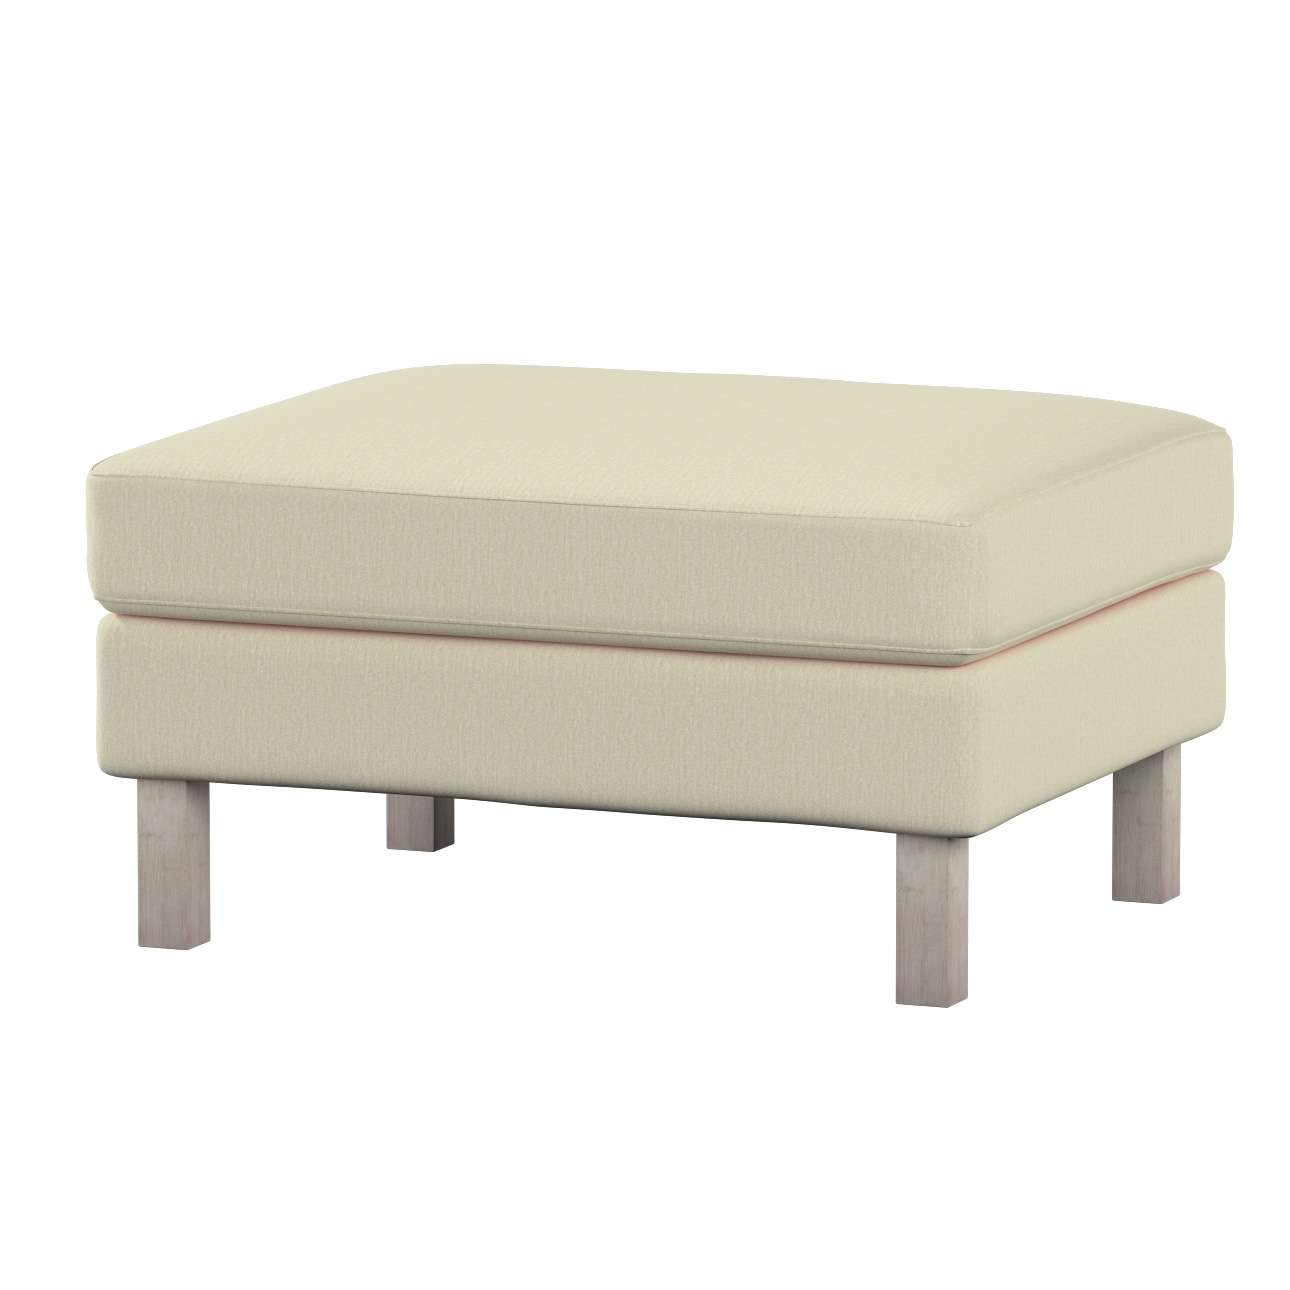 Karlstad footstool cover Karlstad footstool cover in collection Chenille, fabric: 702-22